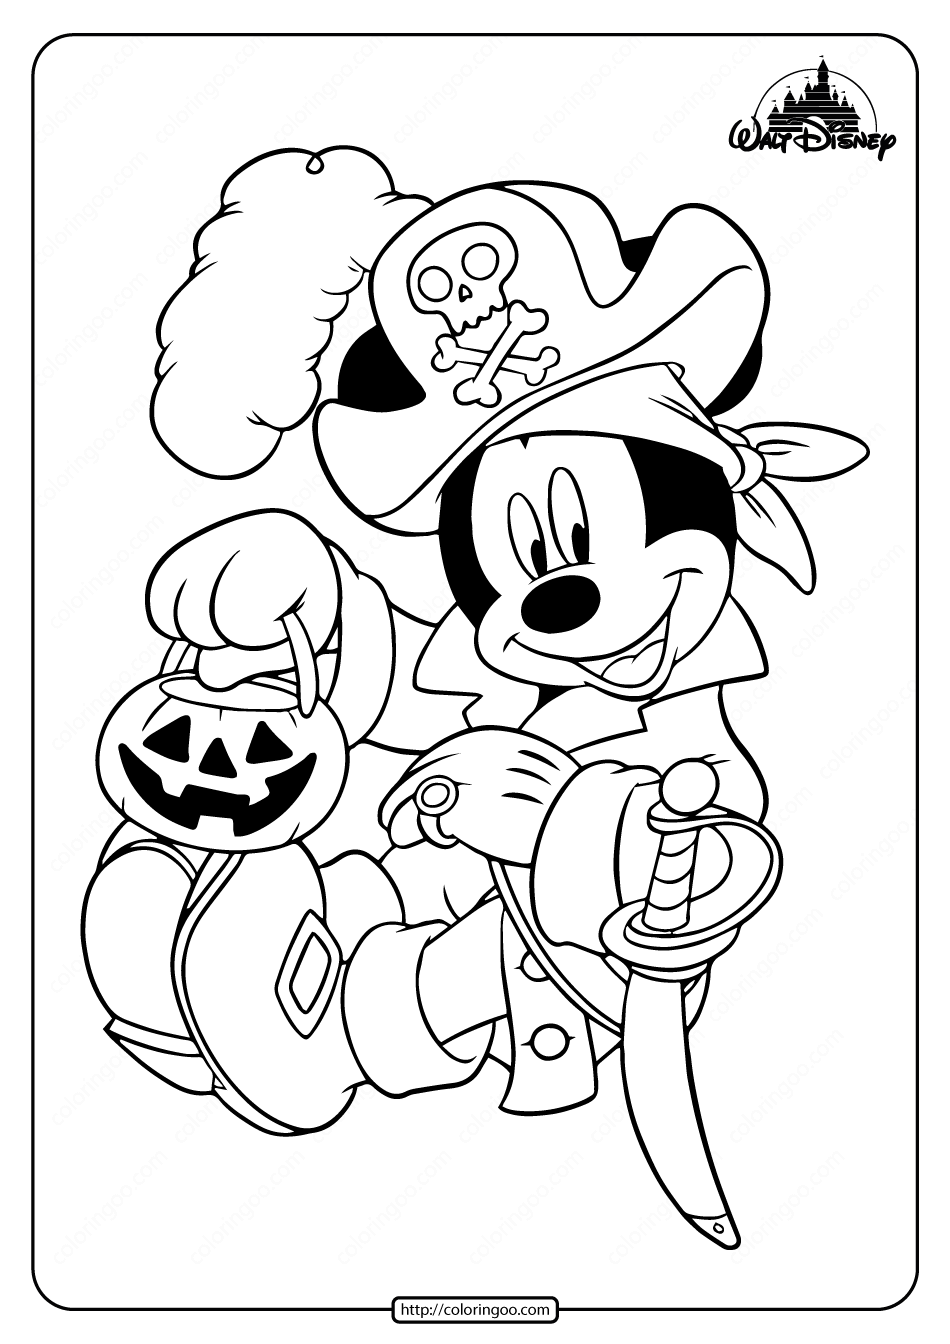 Pirate Mickey Mouse Coloring Pages